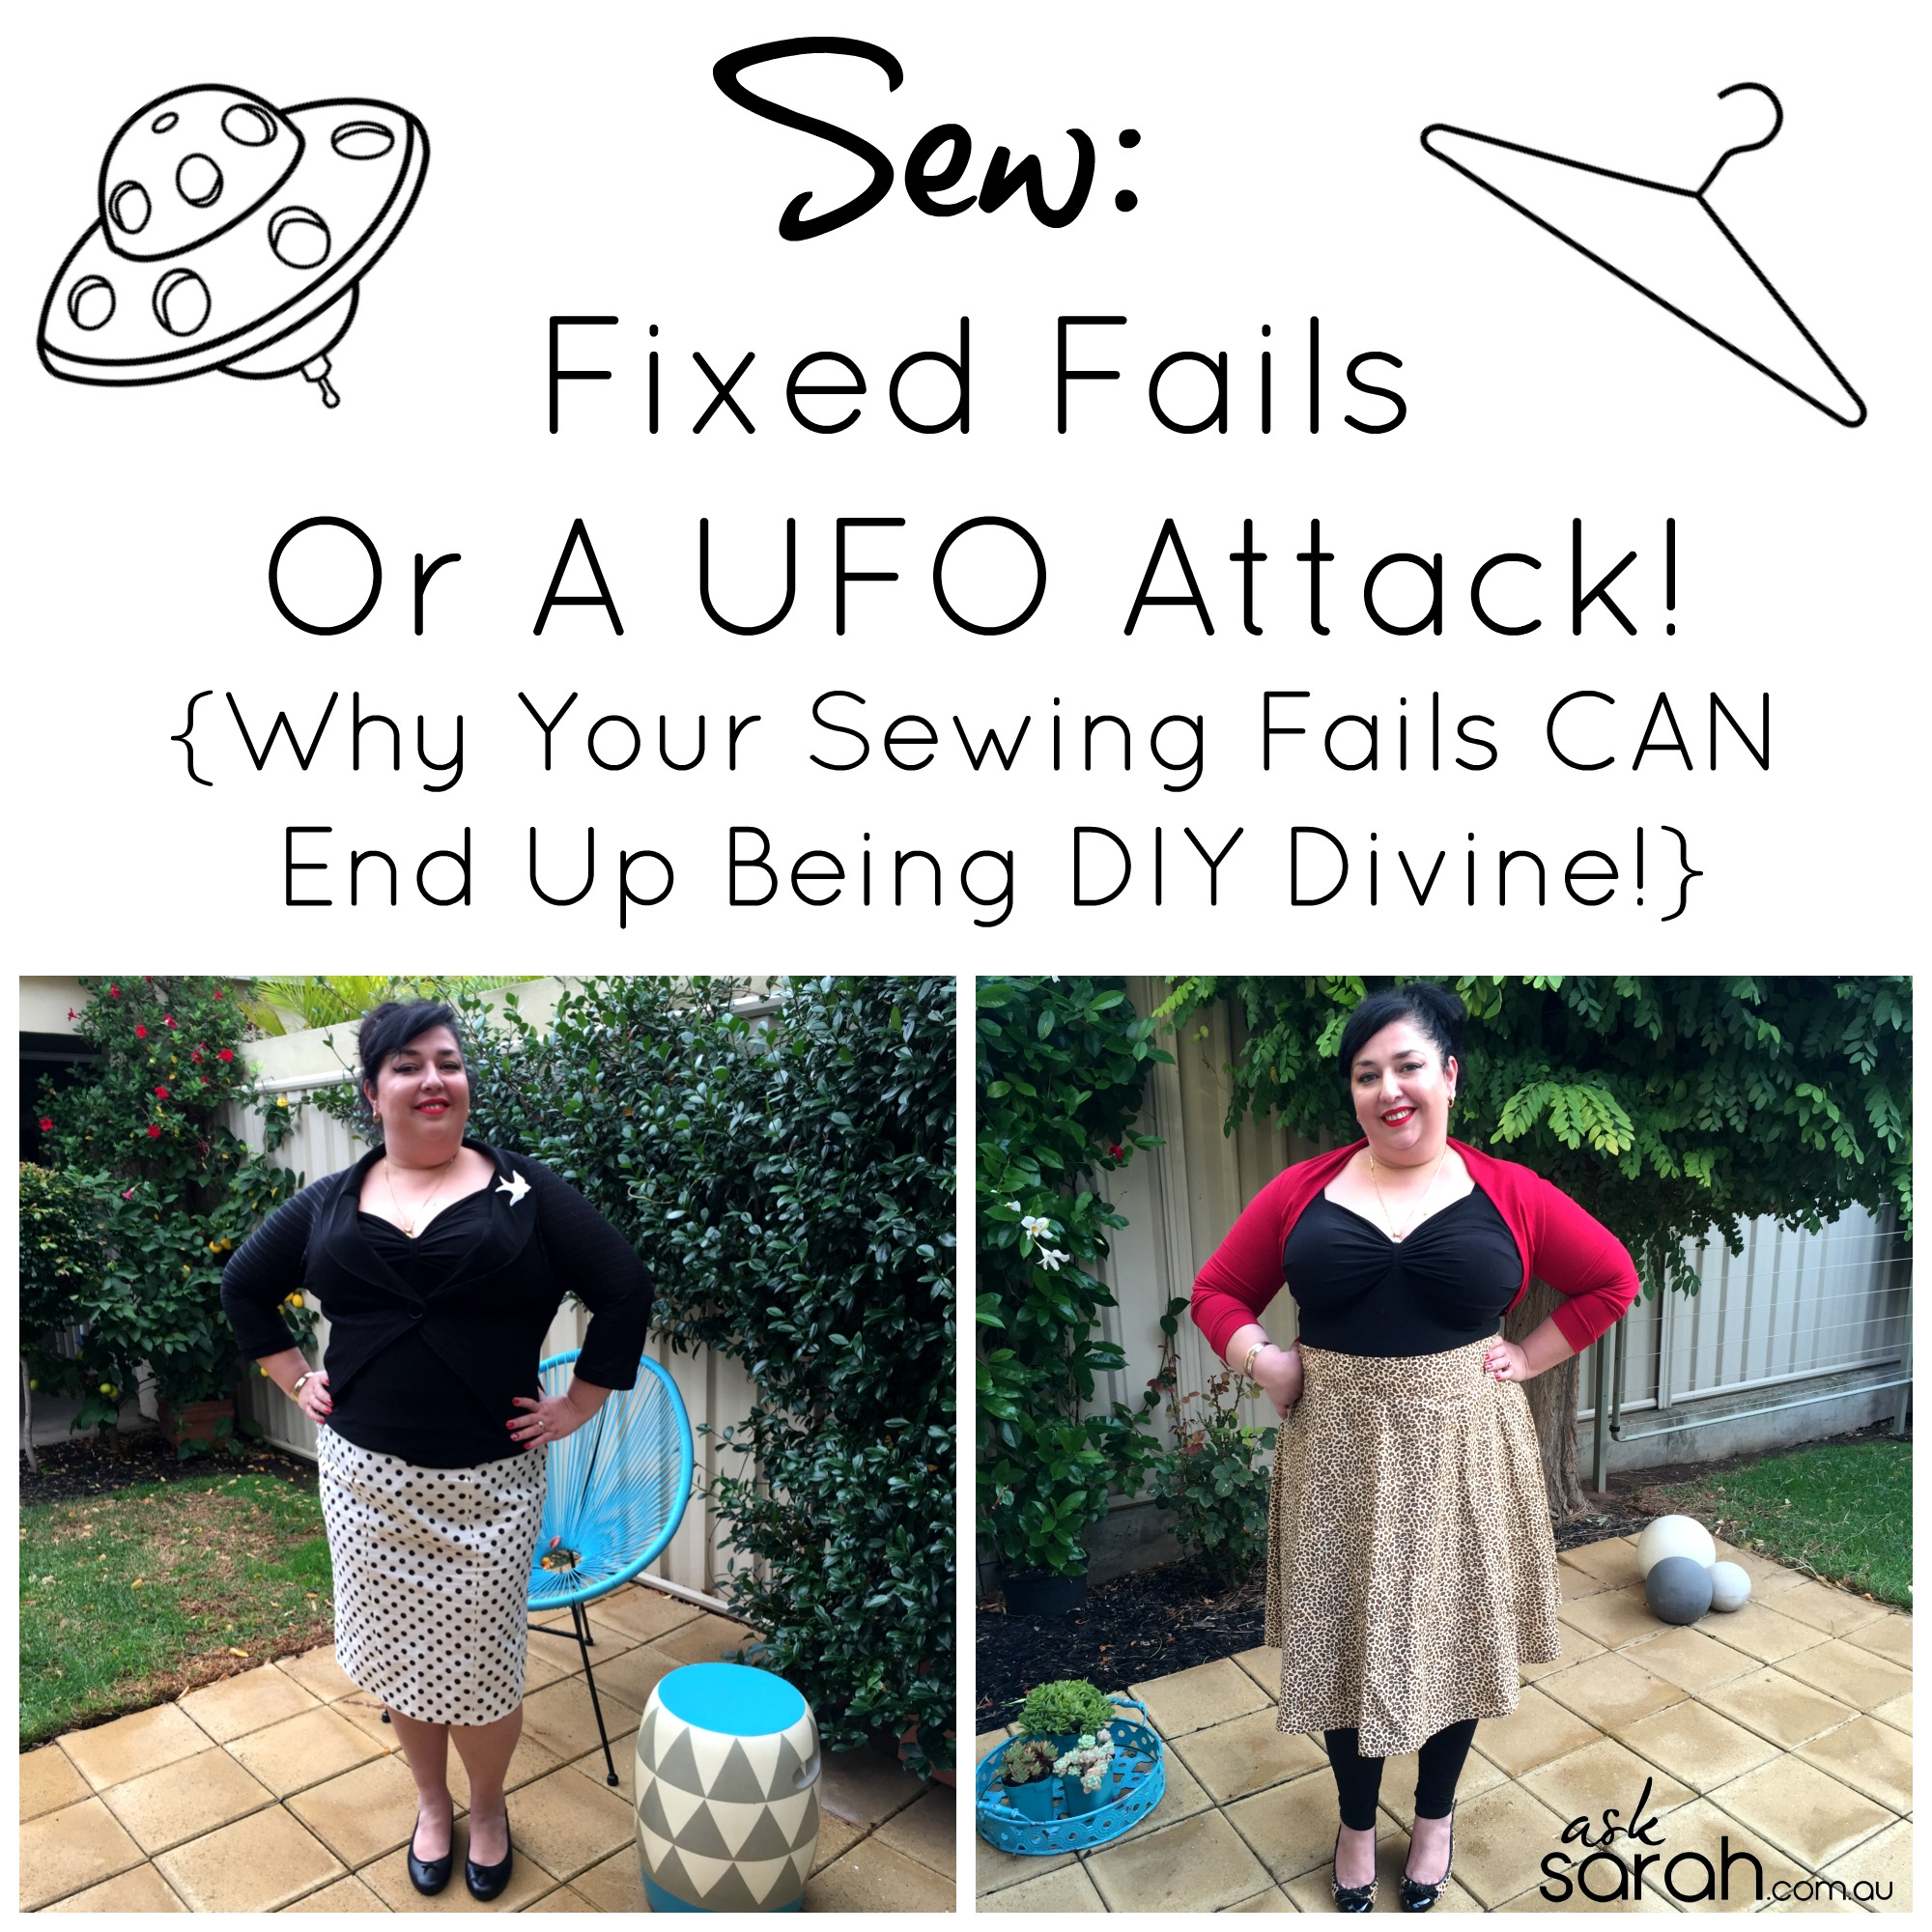 Sew: Fixed Fails Or A UFO Attack! {Why Your Sewing Fails Can End Up Being DIY Divine!}